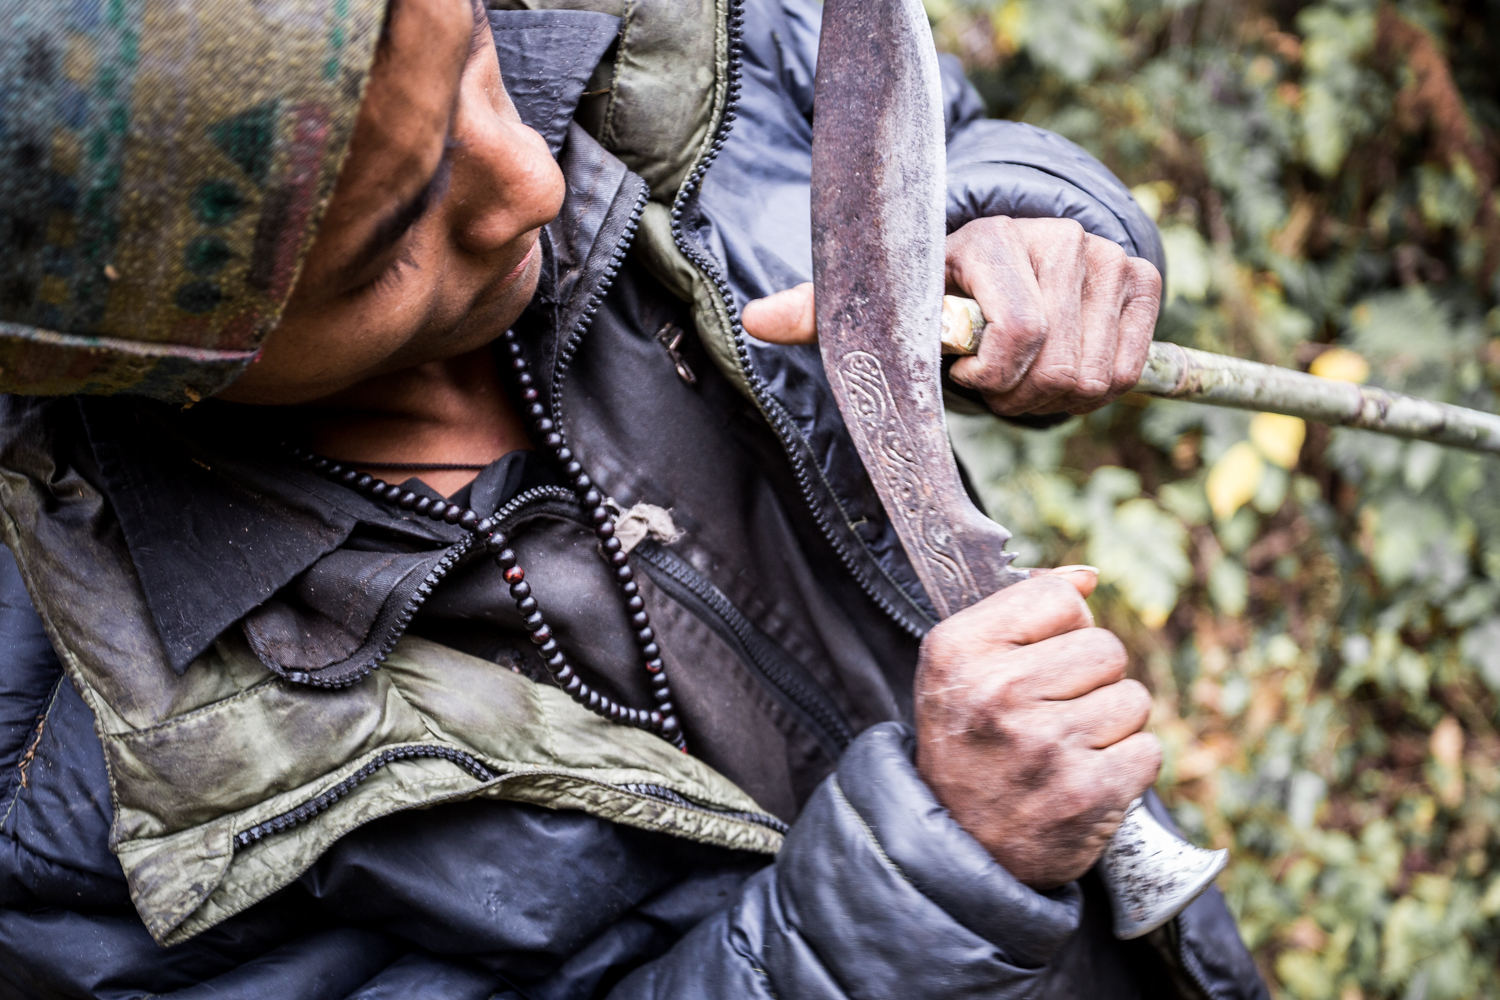 Villager in the Manaslu Reserve carving bamboo into a walking stick.